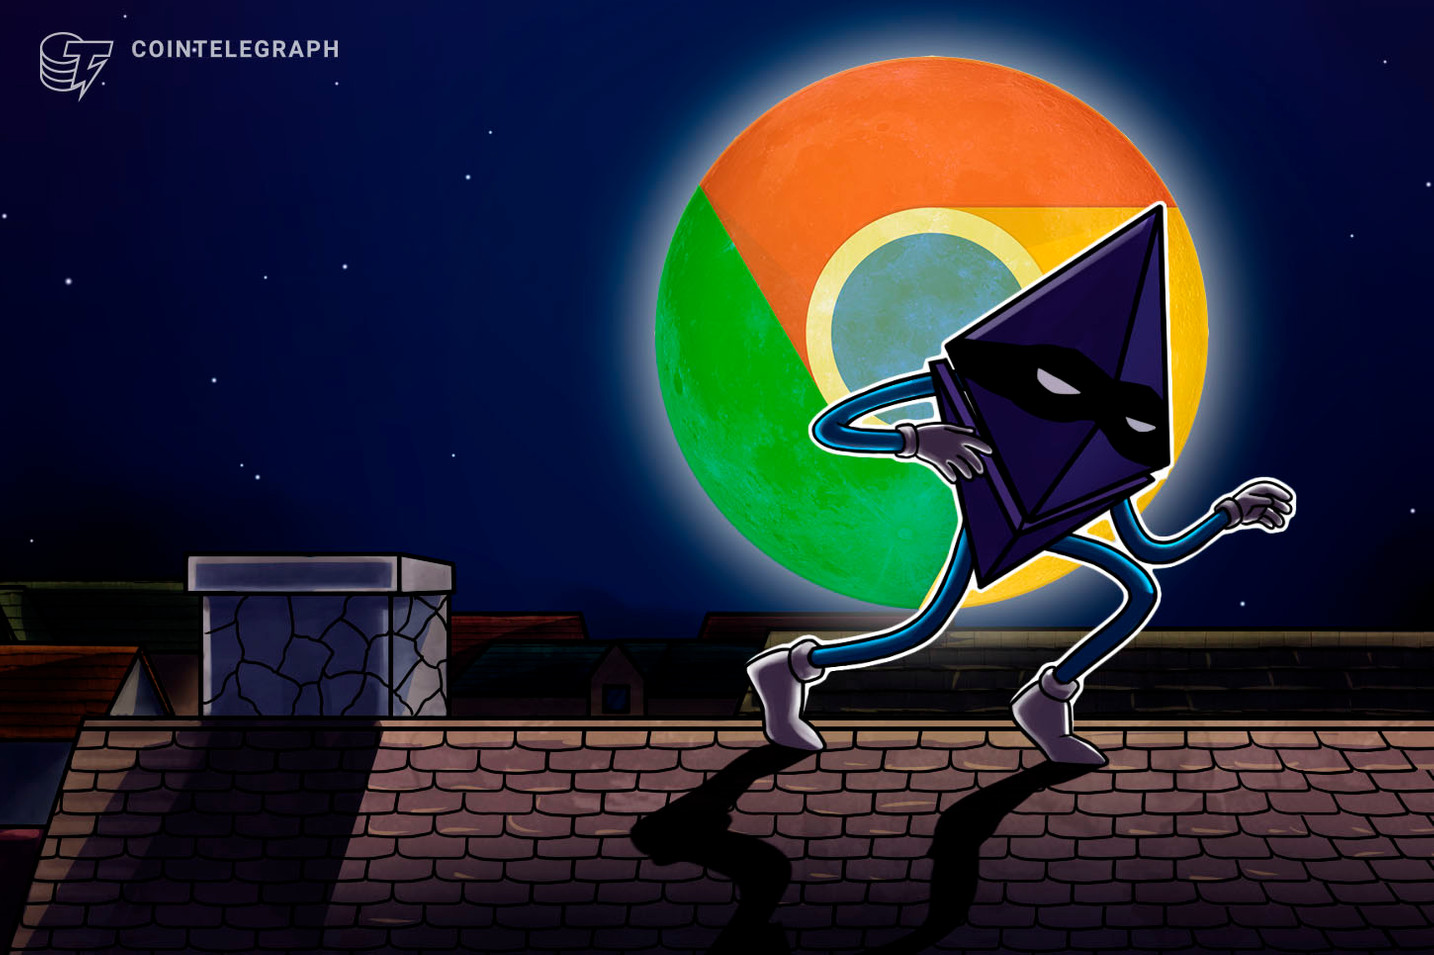 L'estensione per il browser Chrome di un wallet di Ethereum ruba dati personali iniettando codice JavaScript